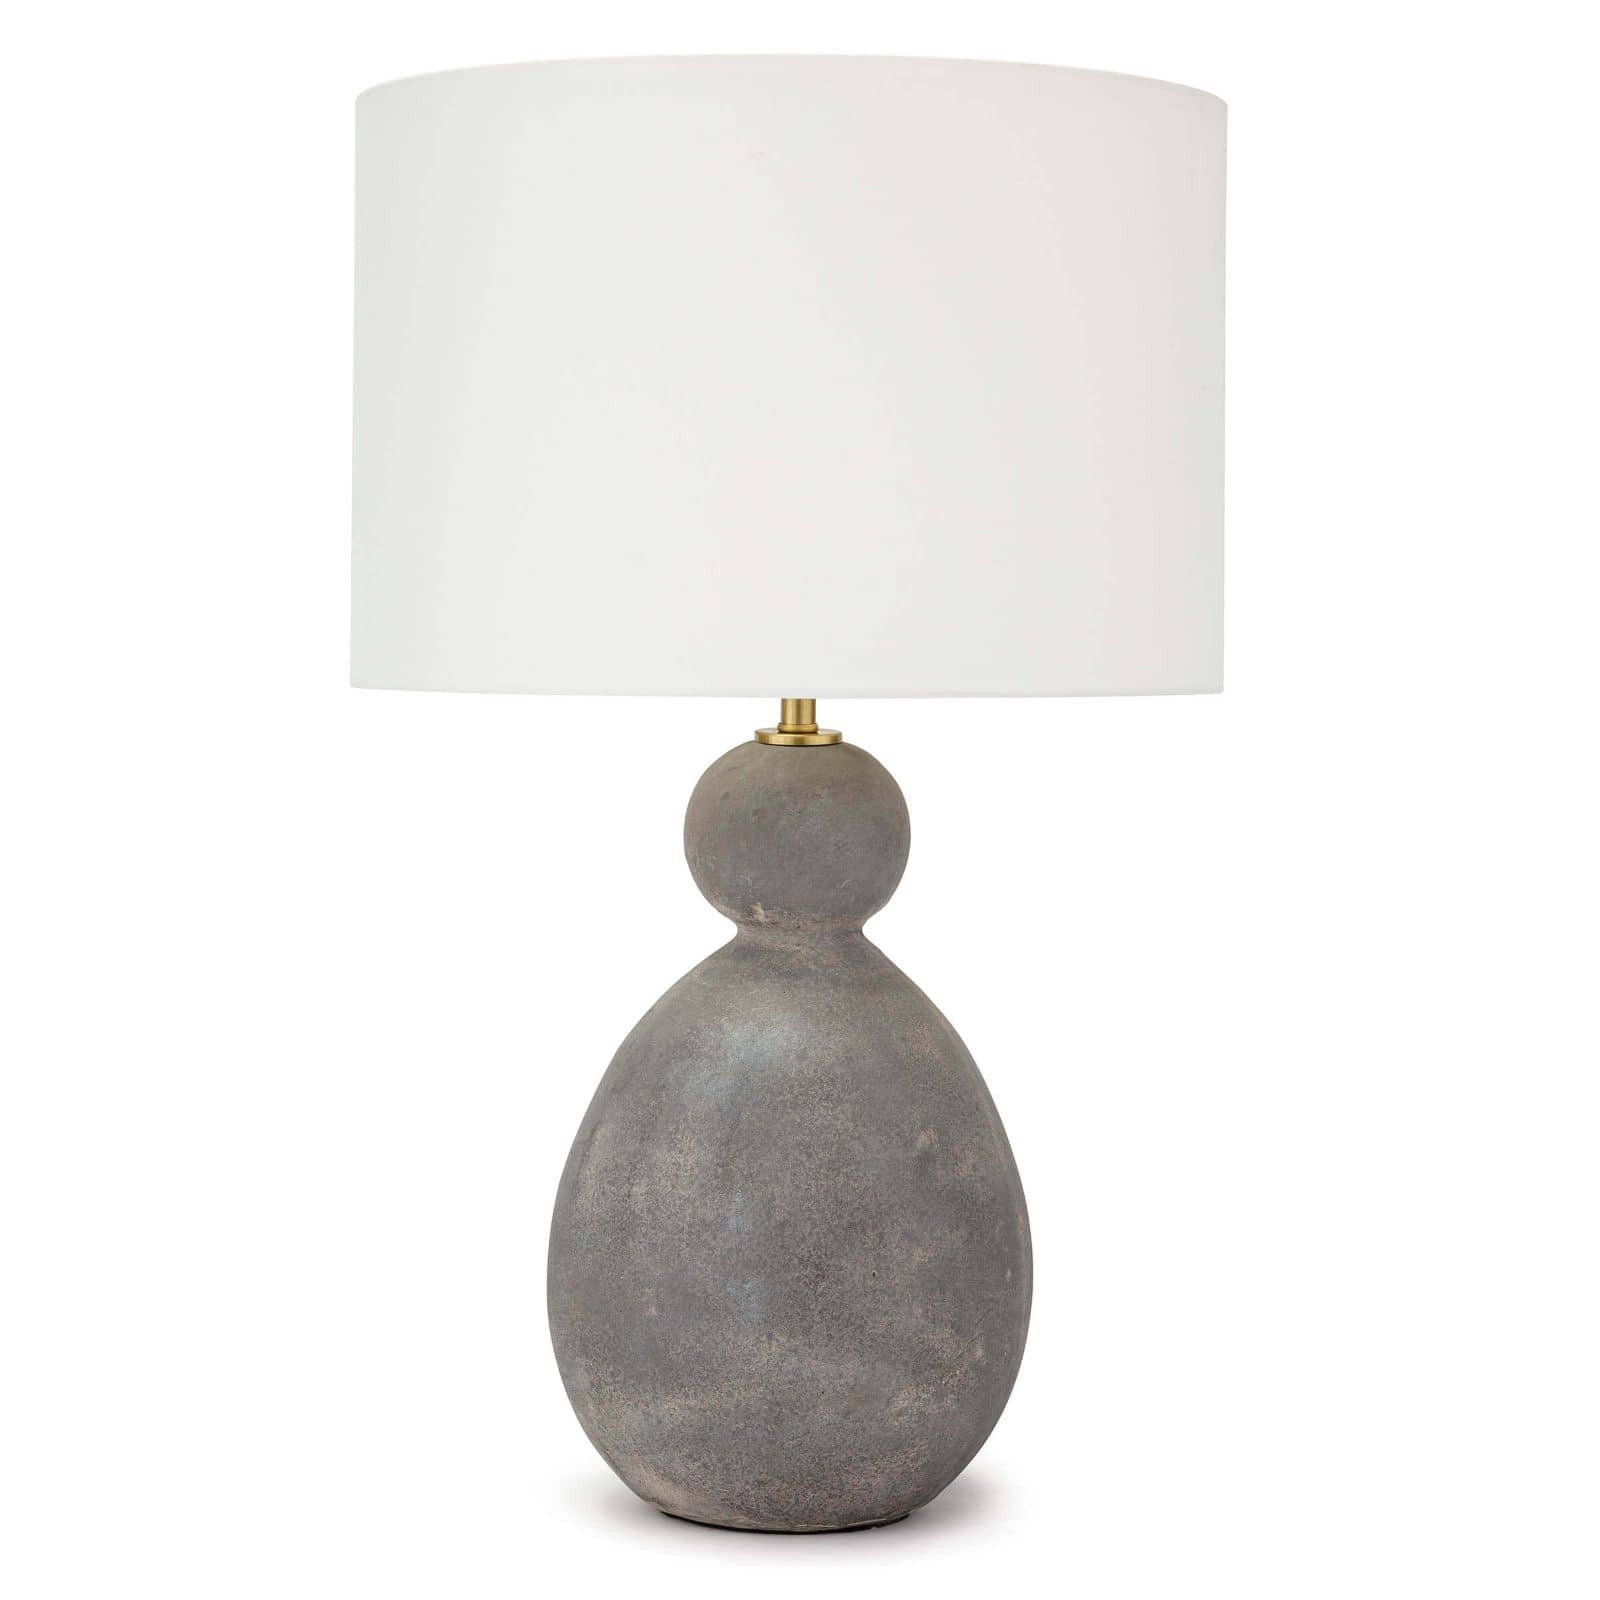 Playa Ceramic Table Lamp 13-1443